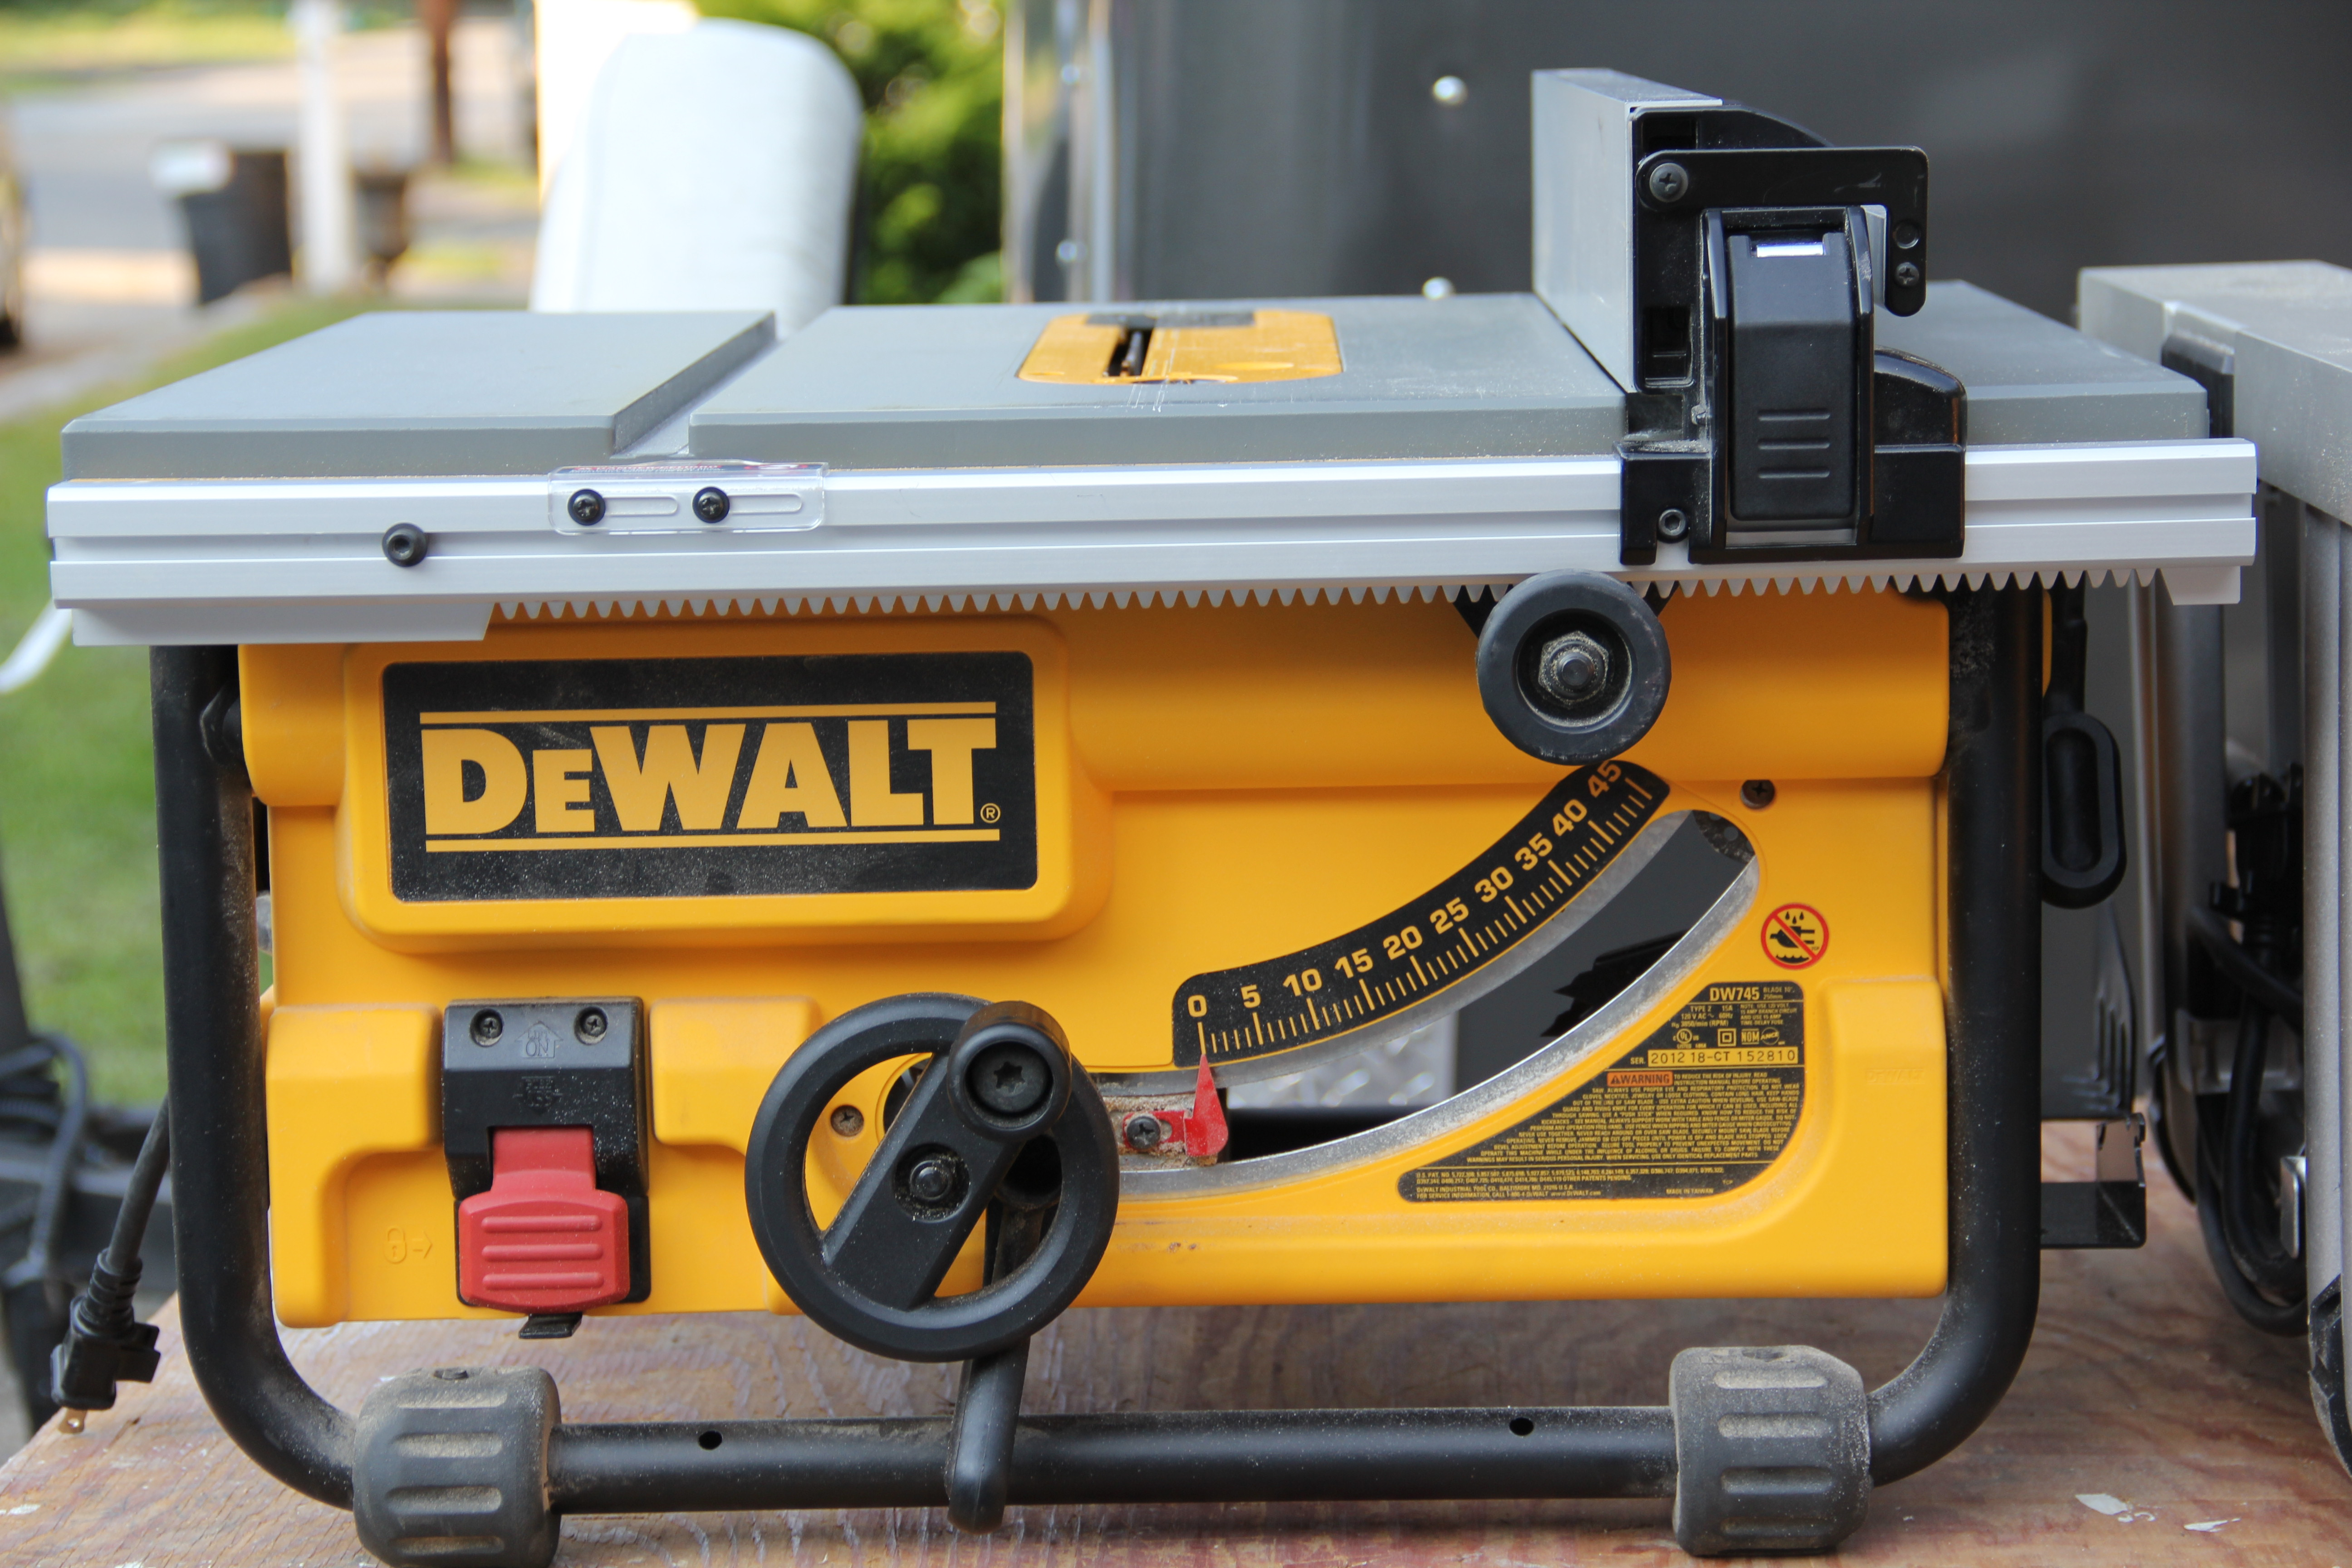 Dewalt vs bosch compact table saw comparison m dewalt dw745 greentooth Images